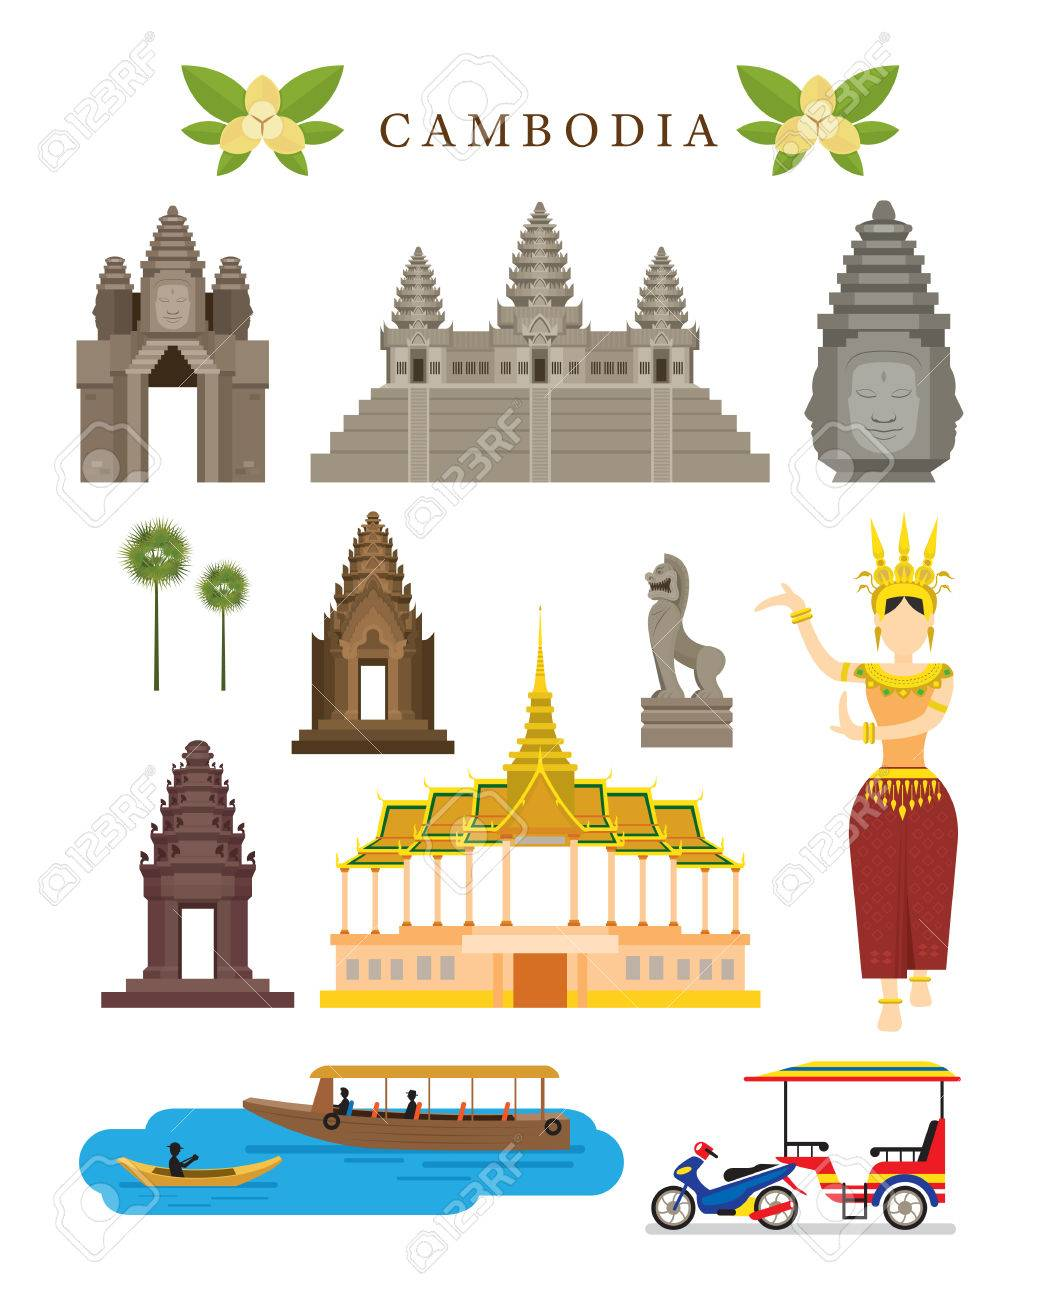 Cambodia Landmarks and Culture Object Set, Colourful, Design Elements, Architecture and Transportation - 70778983